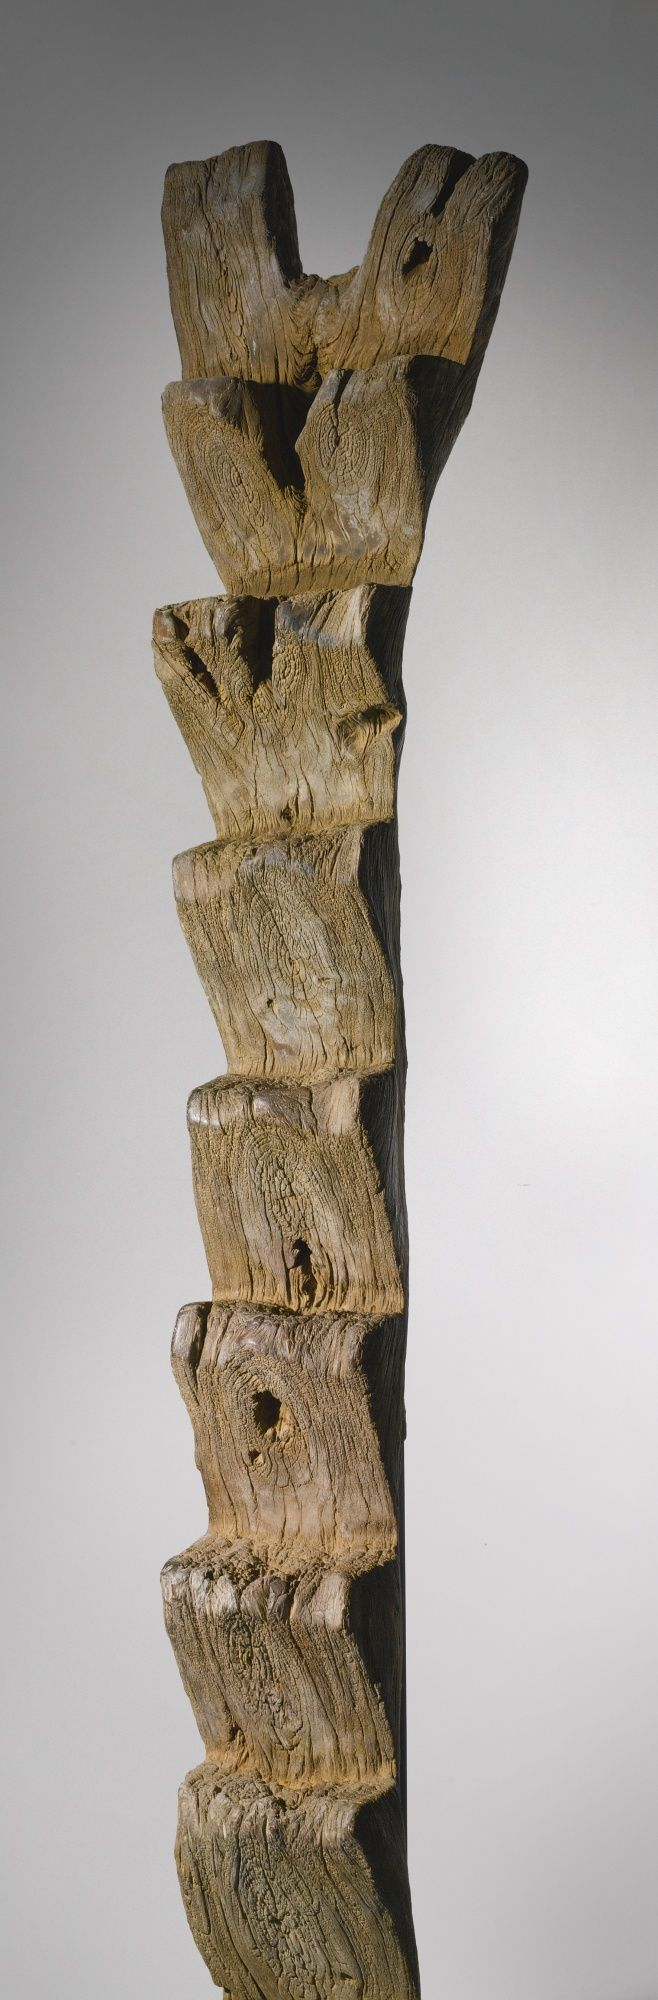 Dogon Ladder, Mali. Height: 8 ft 4 in (254 cm) ... Of enormous proportions and great age